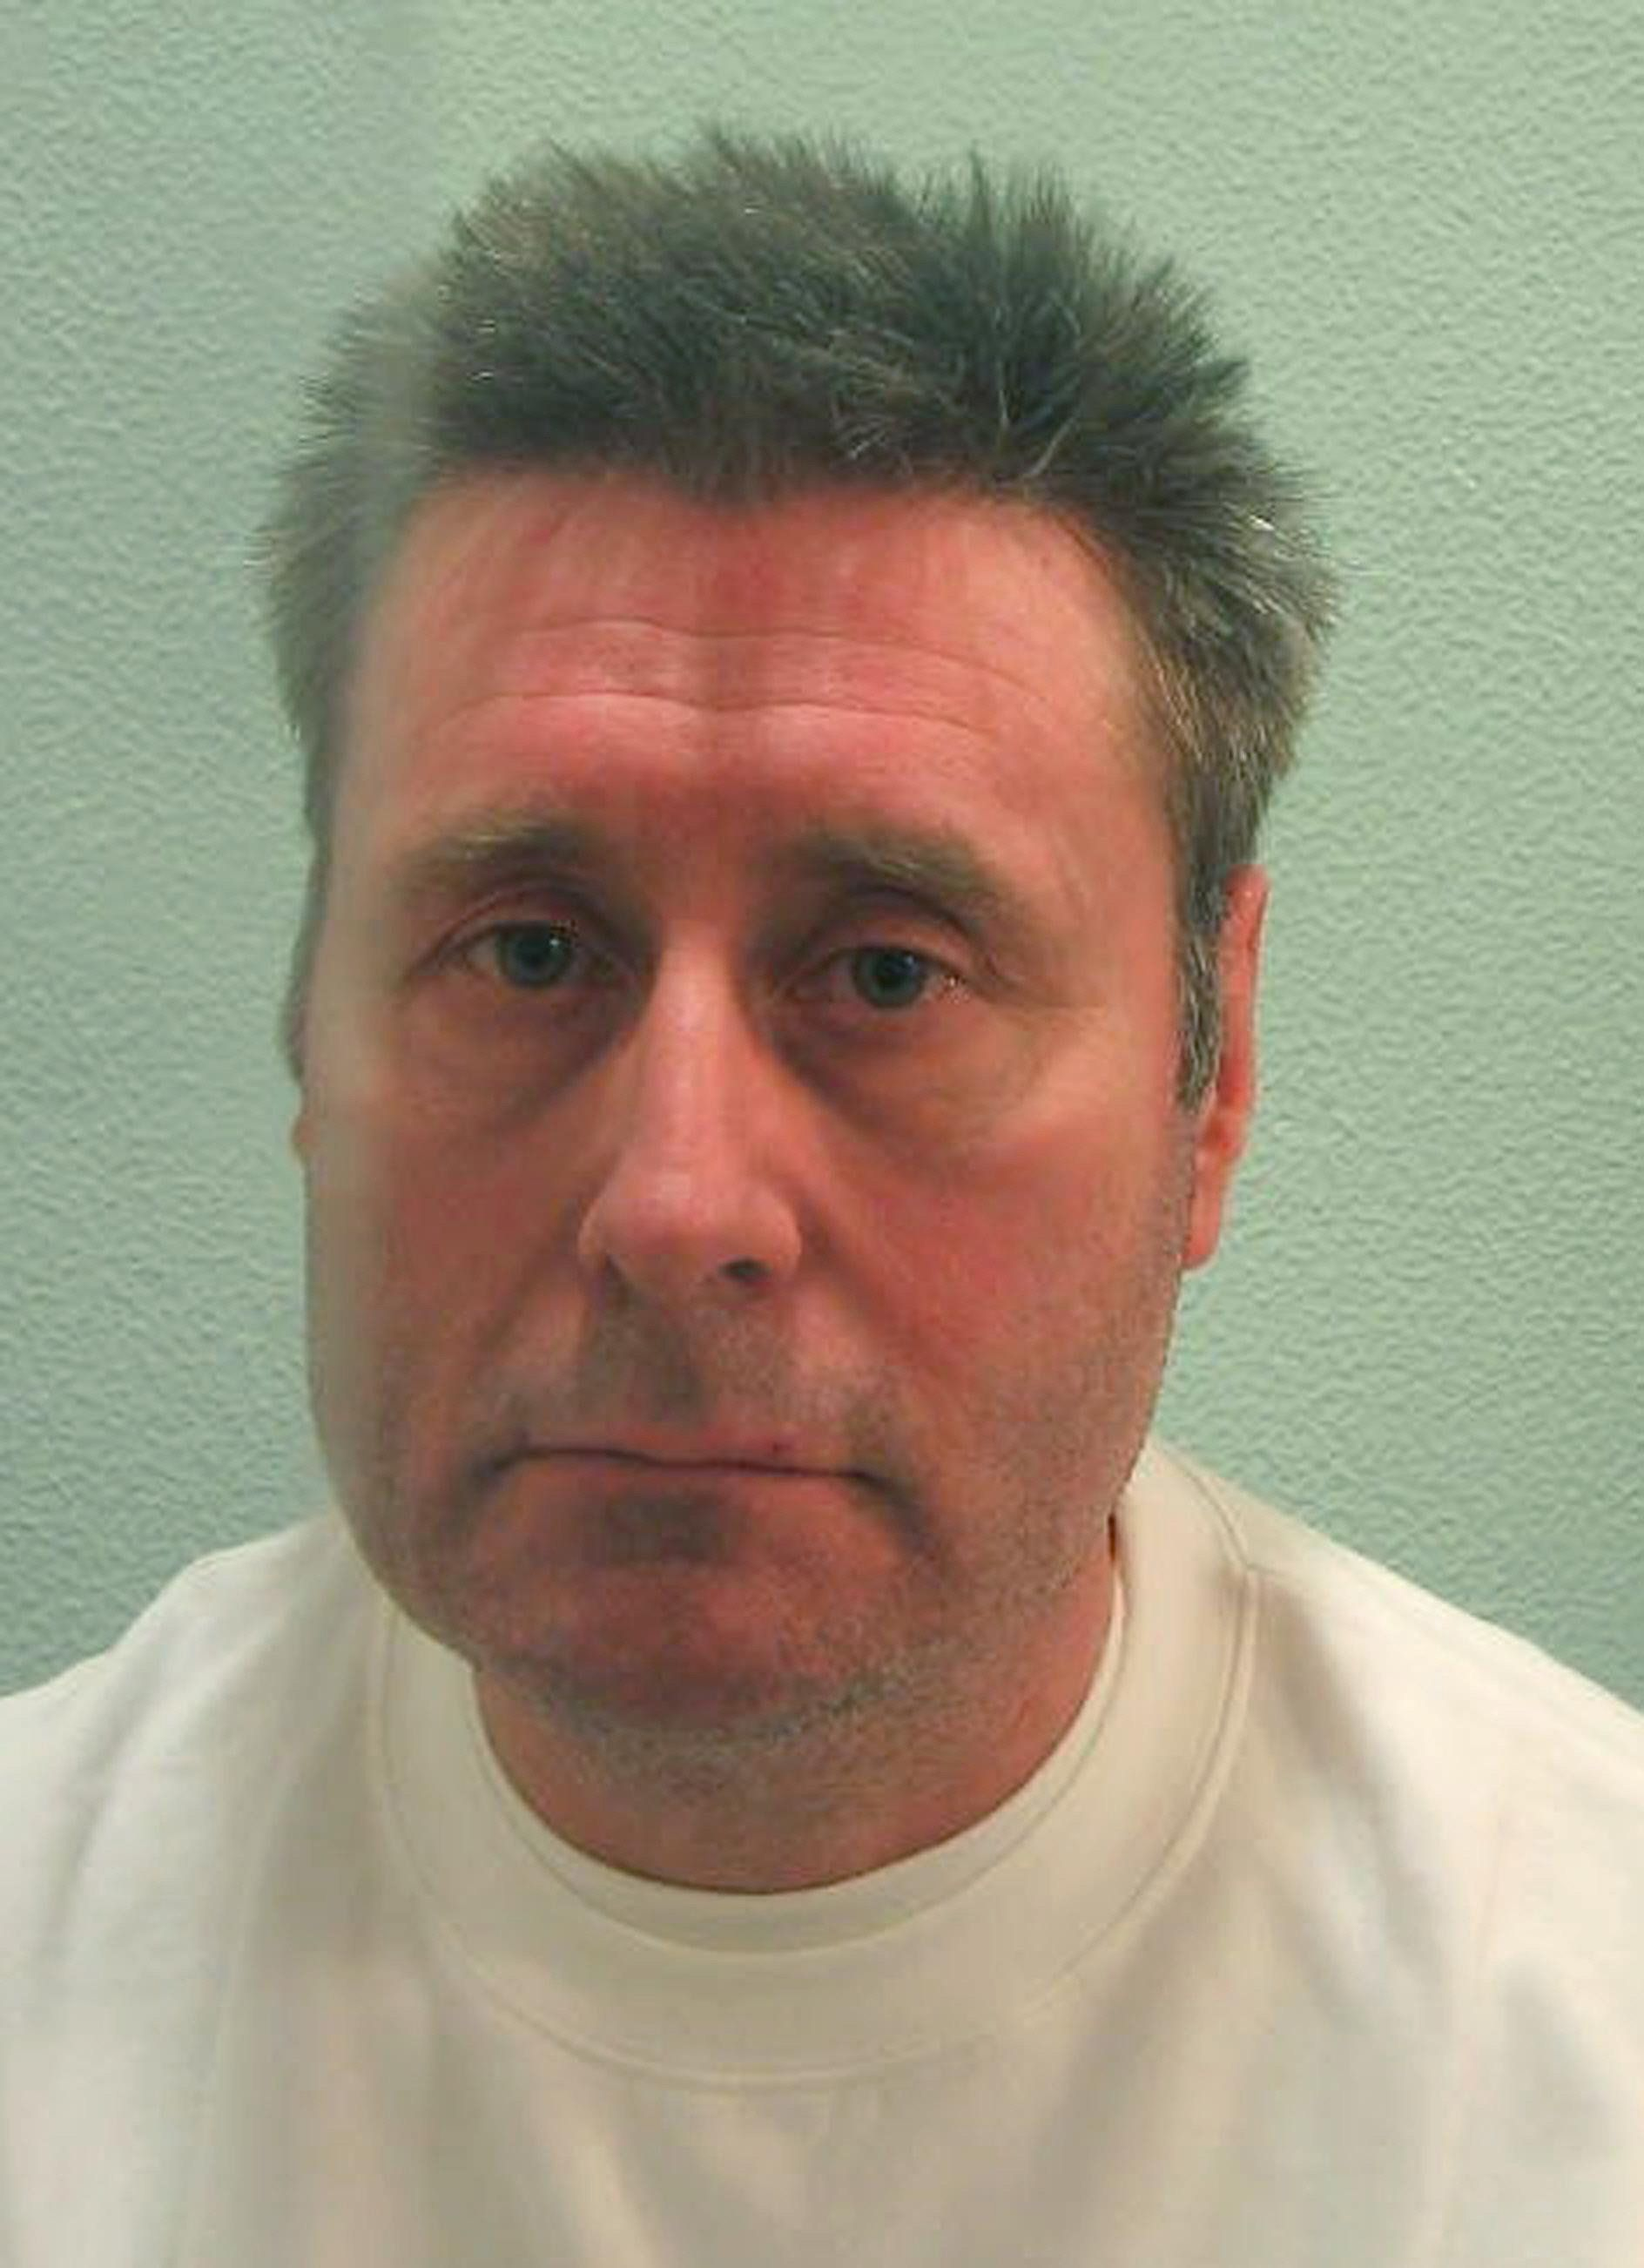 Women's Rights Groups Slam Decision To Release 'Black Cab Rapist' John Worboys From